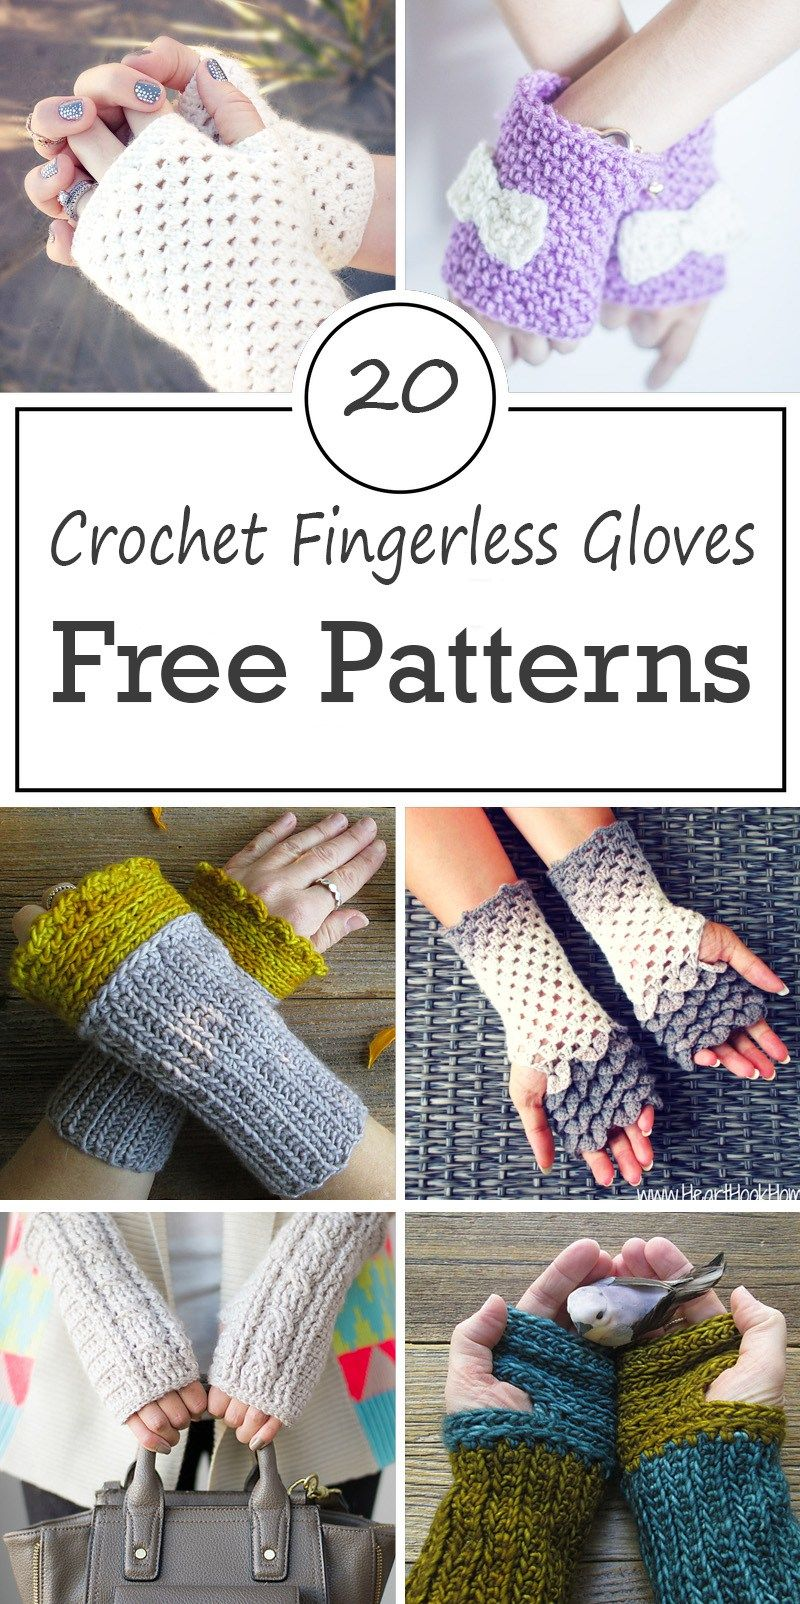 Baeae2c723d94188b0f80df1128dfff7g crochet fingerless gloves free patterns curated collection of free patterns for crocheted fingerless gloves from bankloansurffo Image collections